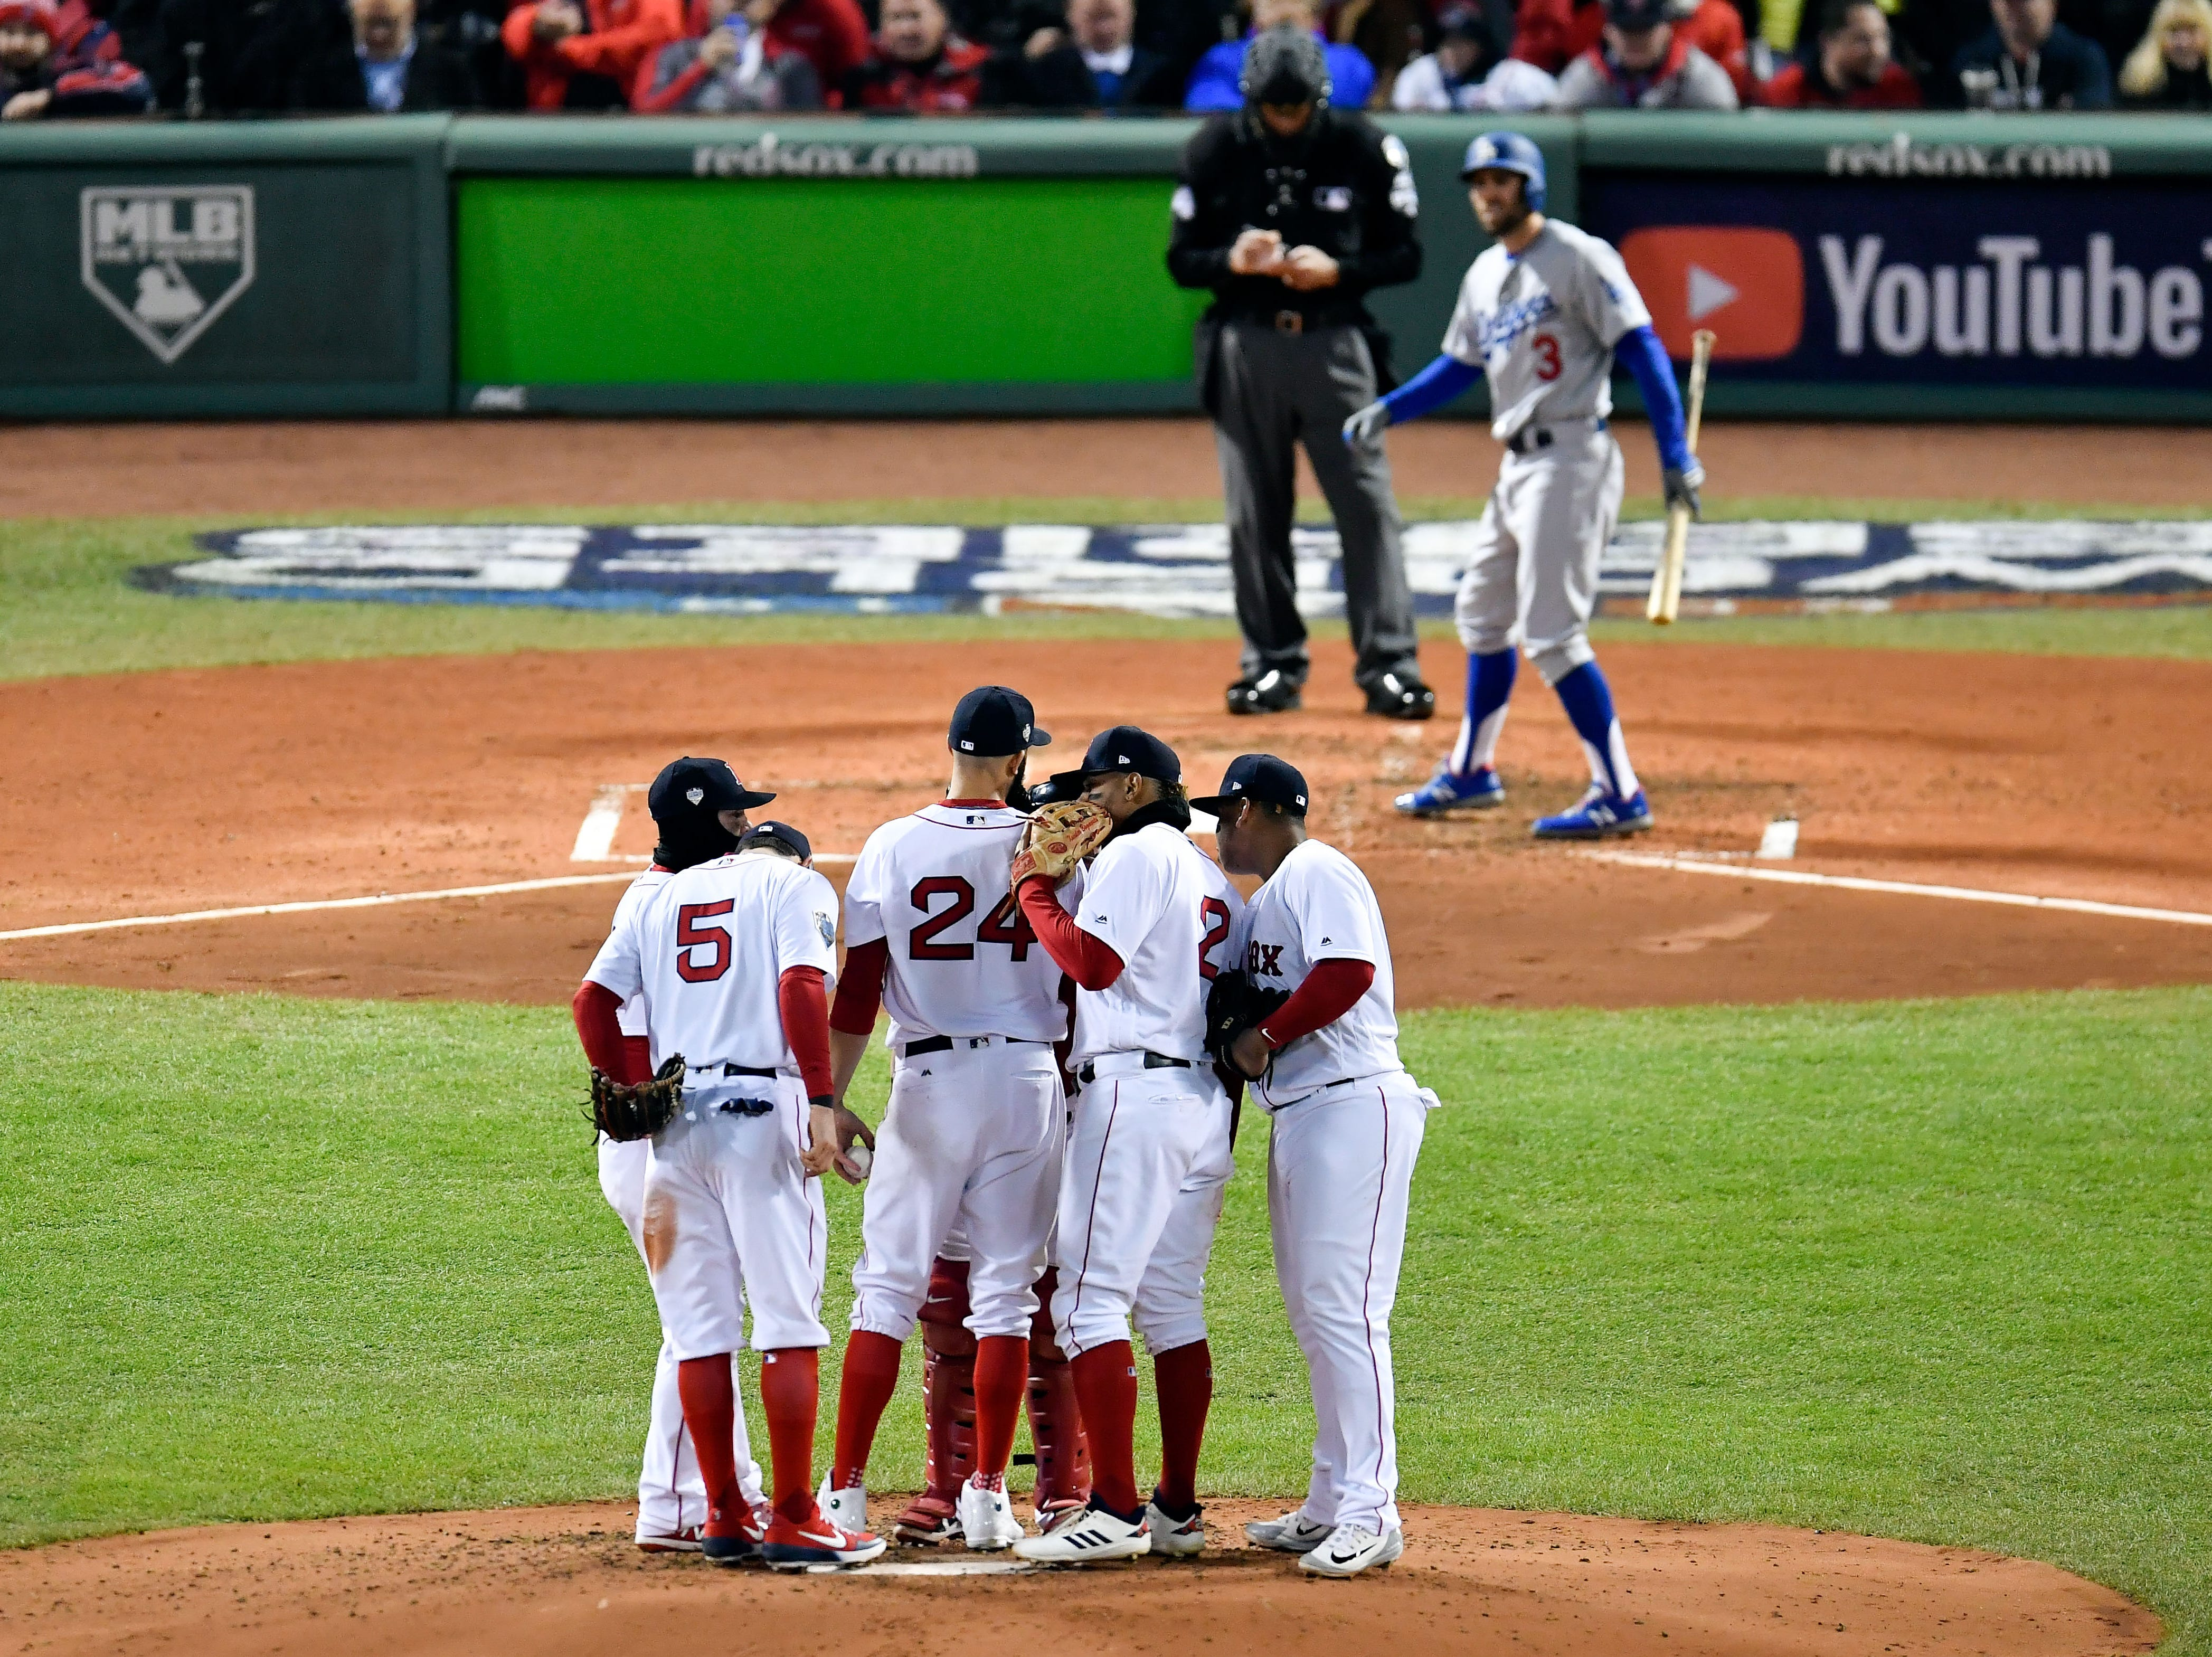 Game 2 at Fenway Park: Red Sox players huddle at the mound with pitcher David Price in the fourth inning.